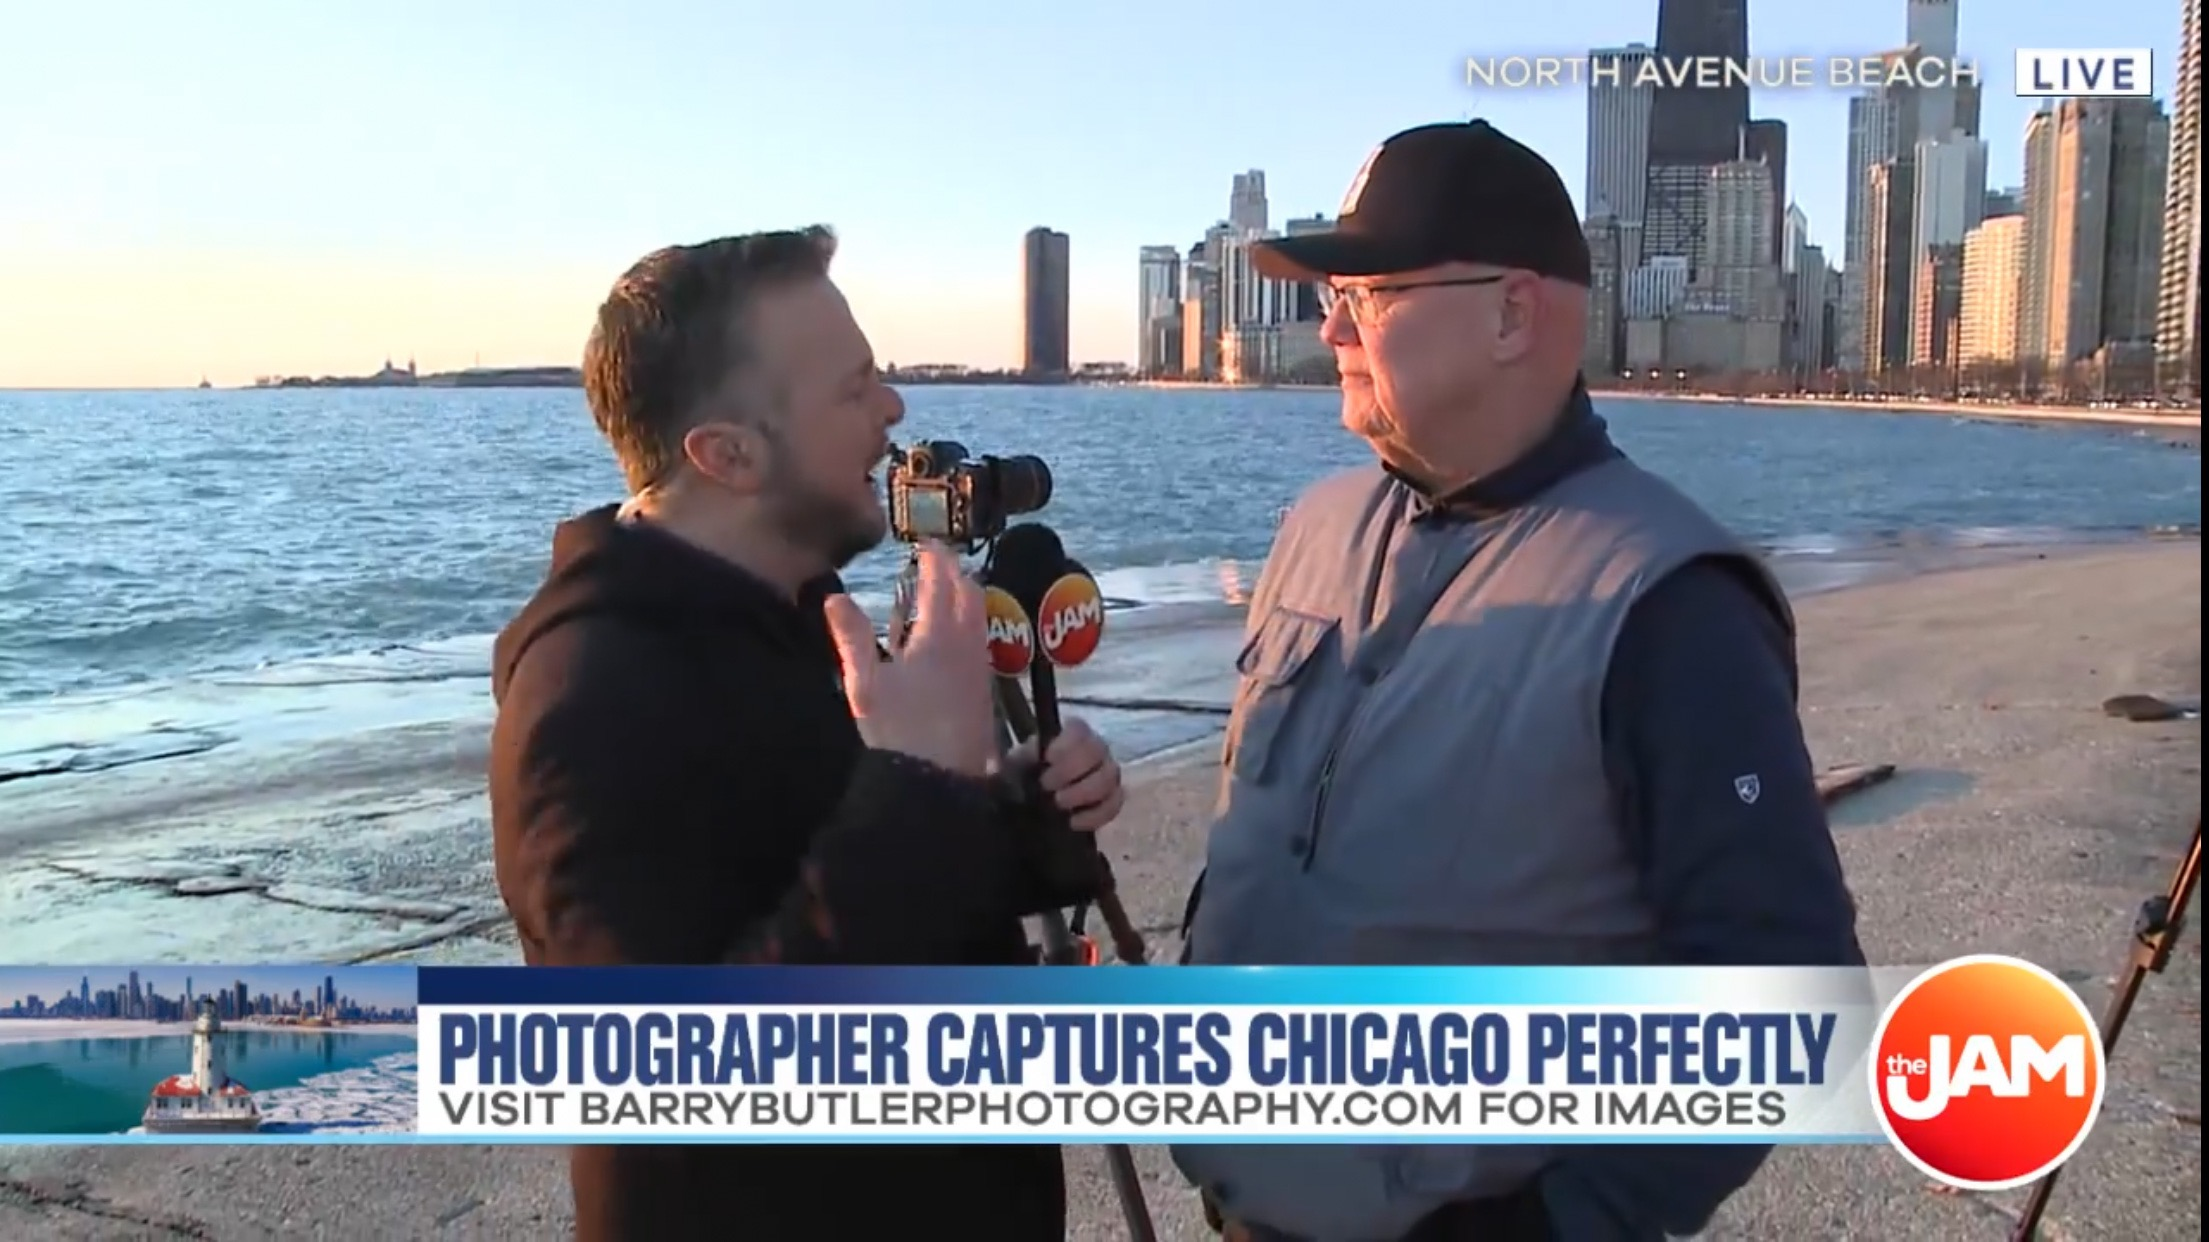 On March 26th, Barry spent time with the Jam morning tv show on WCIU-TV, Channel 26. Jon Hansen had Barry provide photography tips.